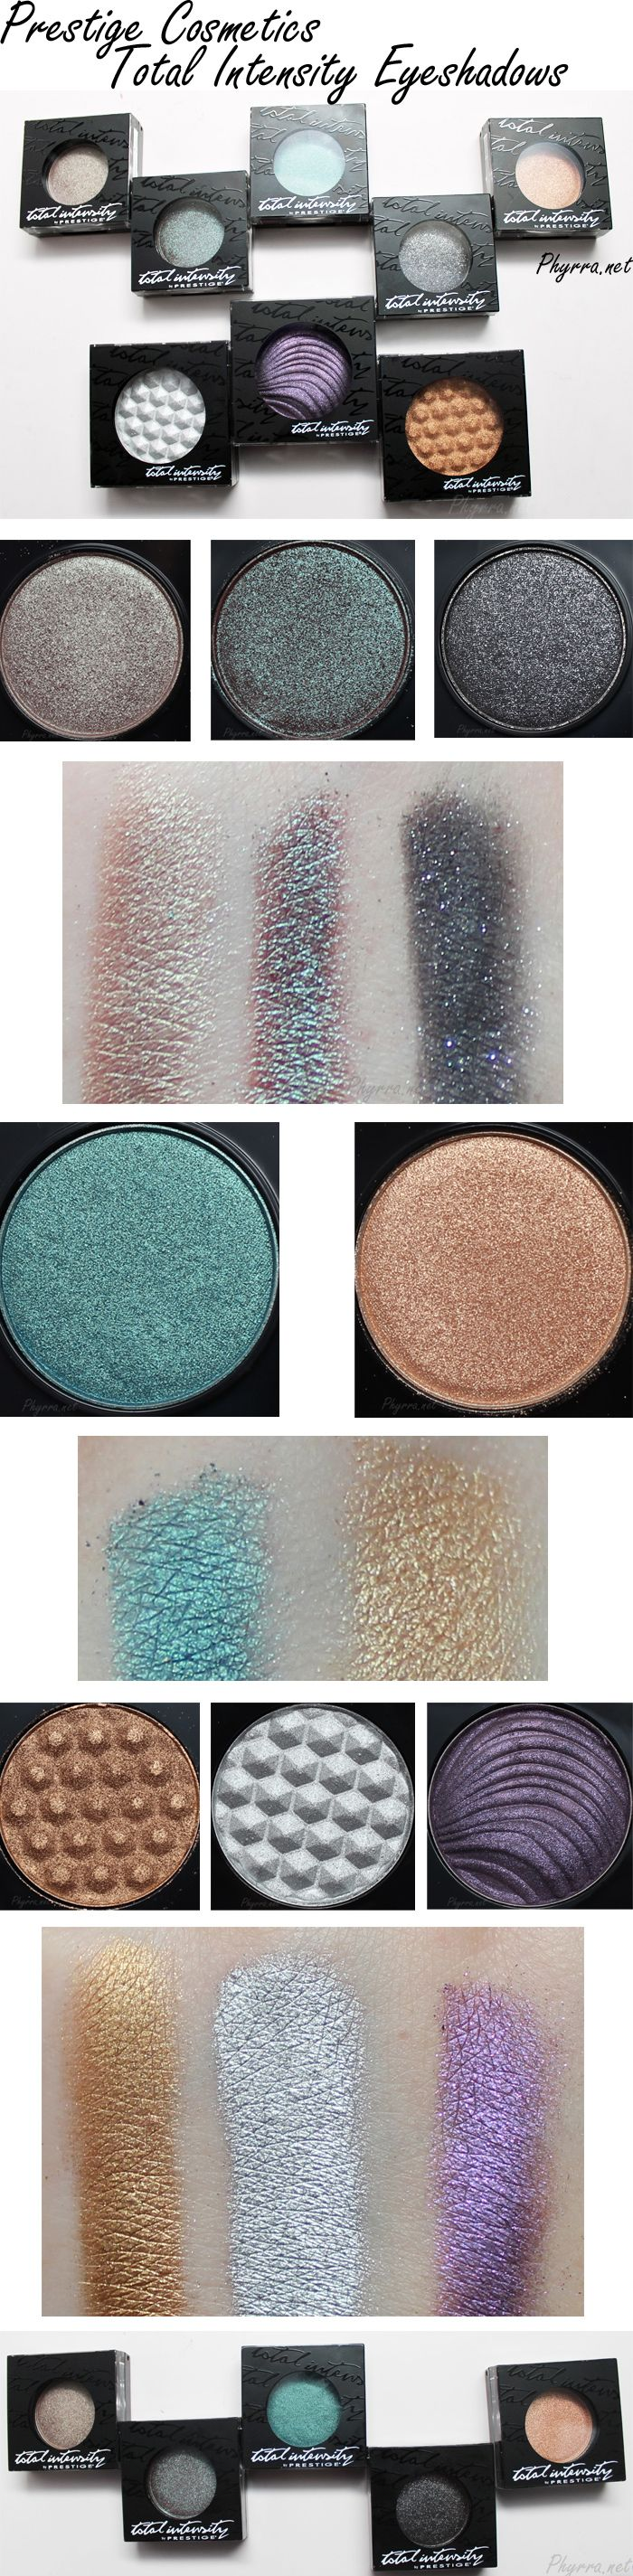 Prestige Cosmetics Total Intensity Eyeshadows are gorgeous! They're very pigmented and easy to apply. They also have some MAC dupes!